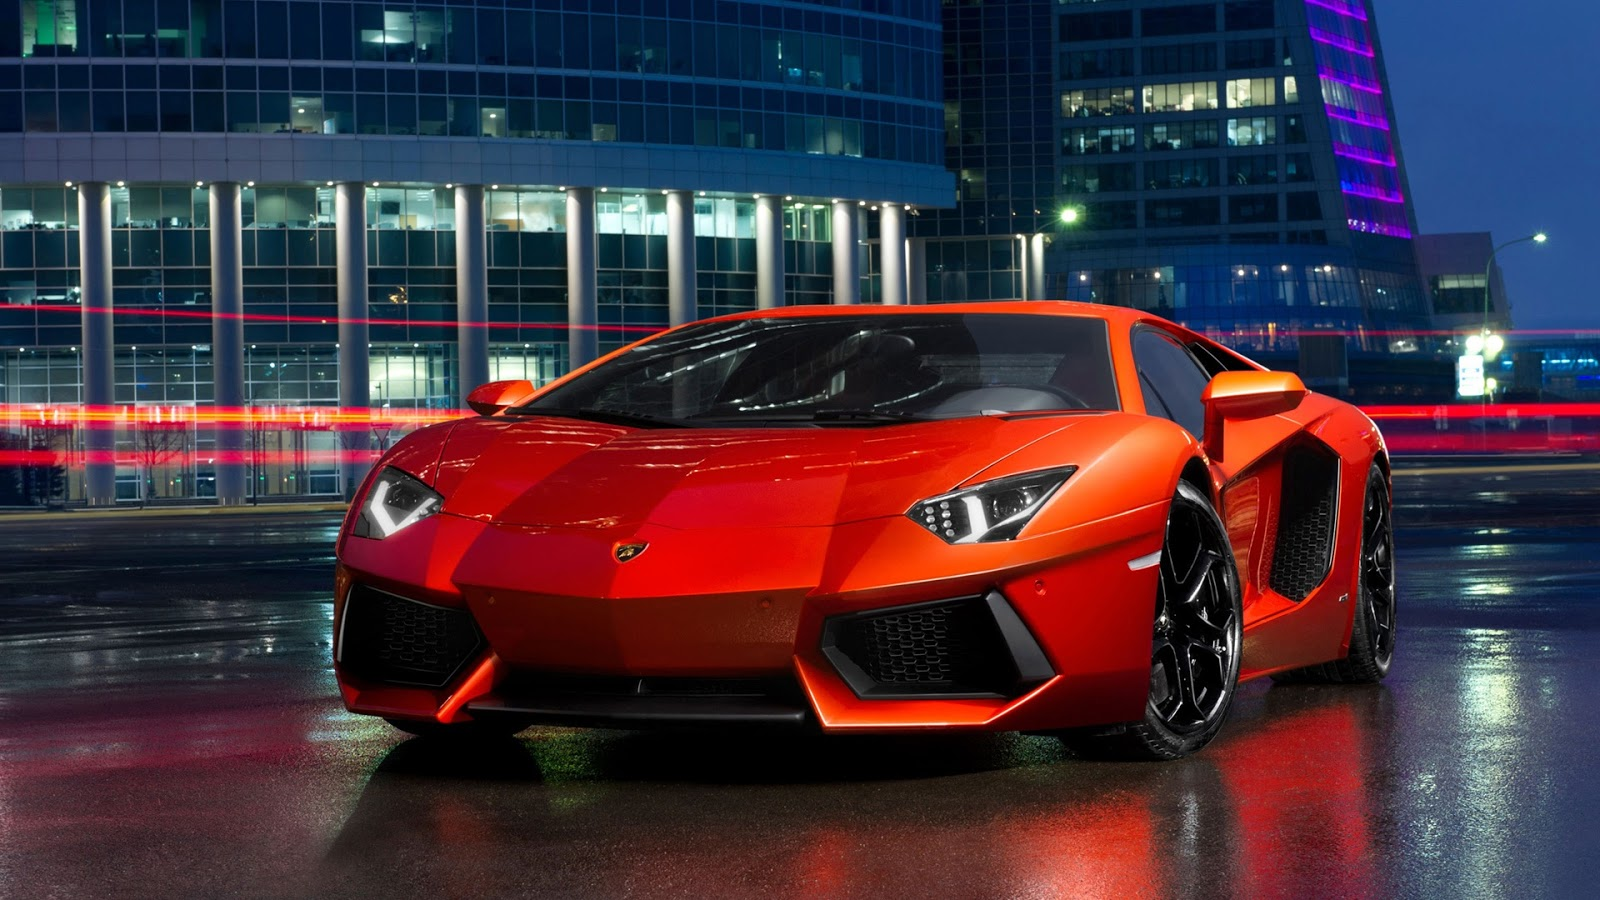 Fantastic Wallpaper Mac Lamborghini - lamborghini+aventador+hd+wallpaper+(2)  HD_756668.jpg